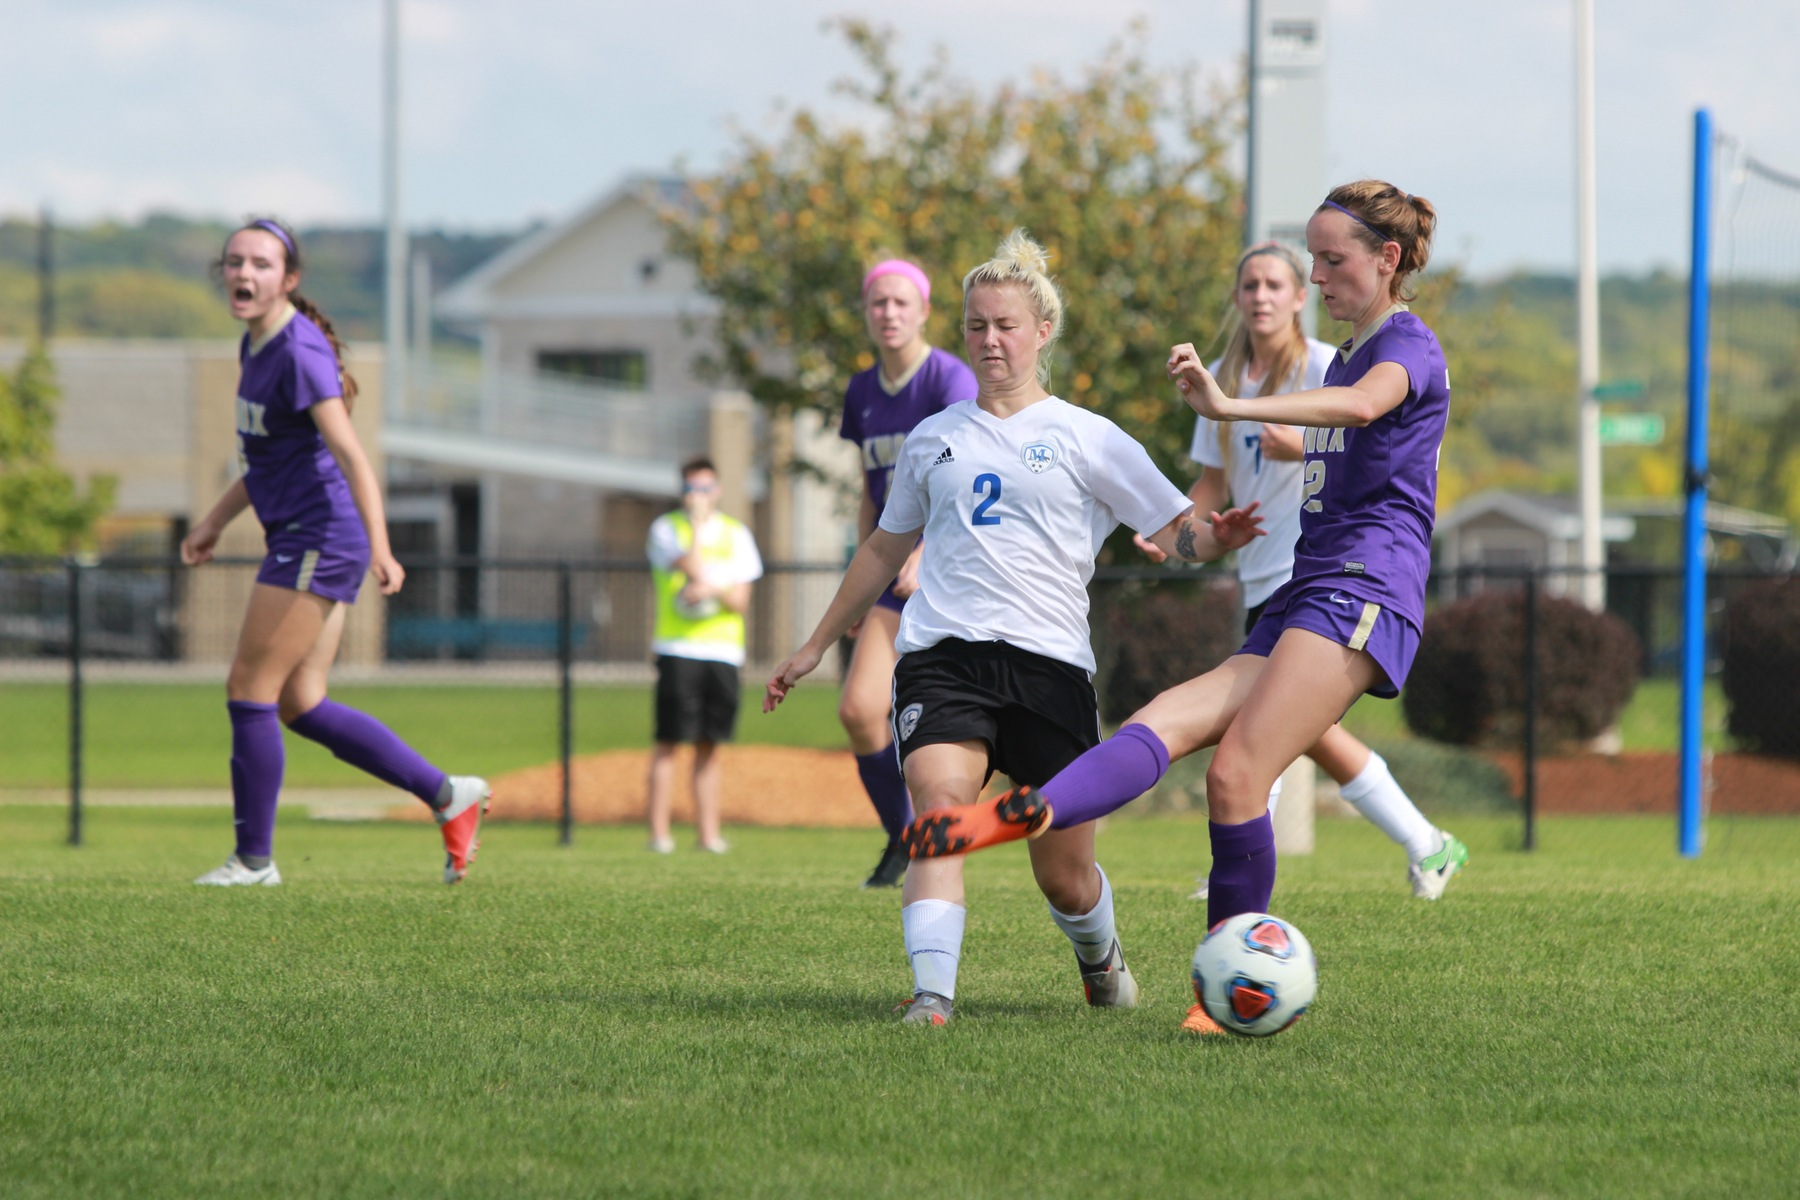 Reilly Louko defends the ball.